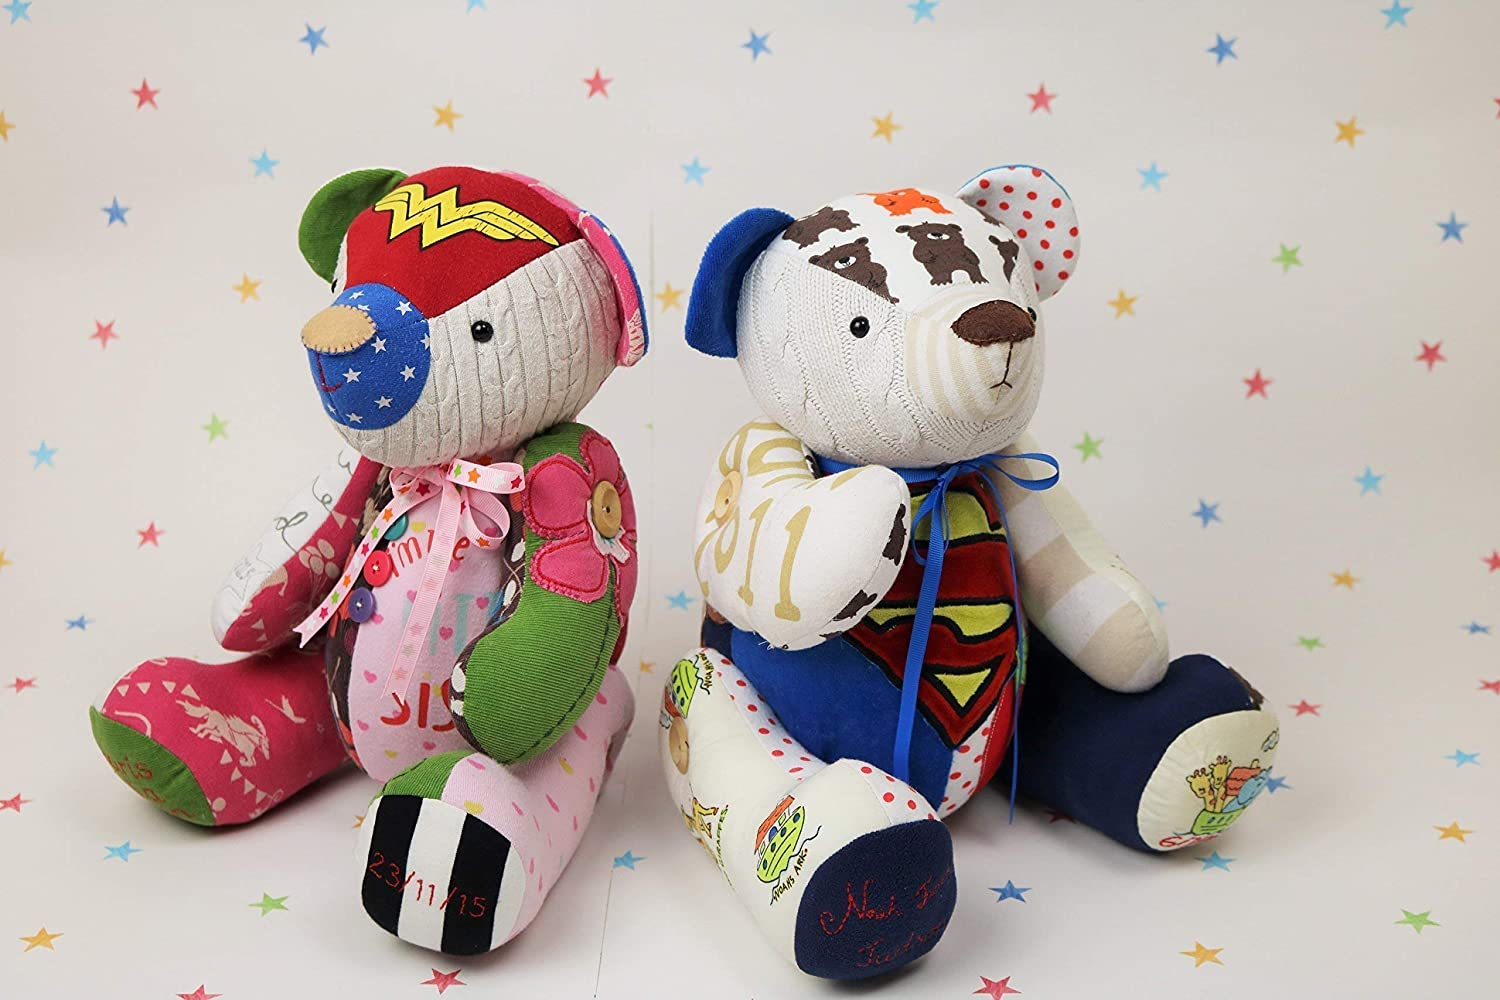 Memory Bear Sewing Pattern - Keepsake Bear Sewing Pattern, Button jointed teddy bear pattern, teddy bear made from clothes pattern, baby clothes teddy bear pattern